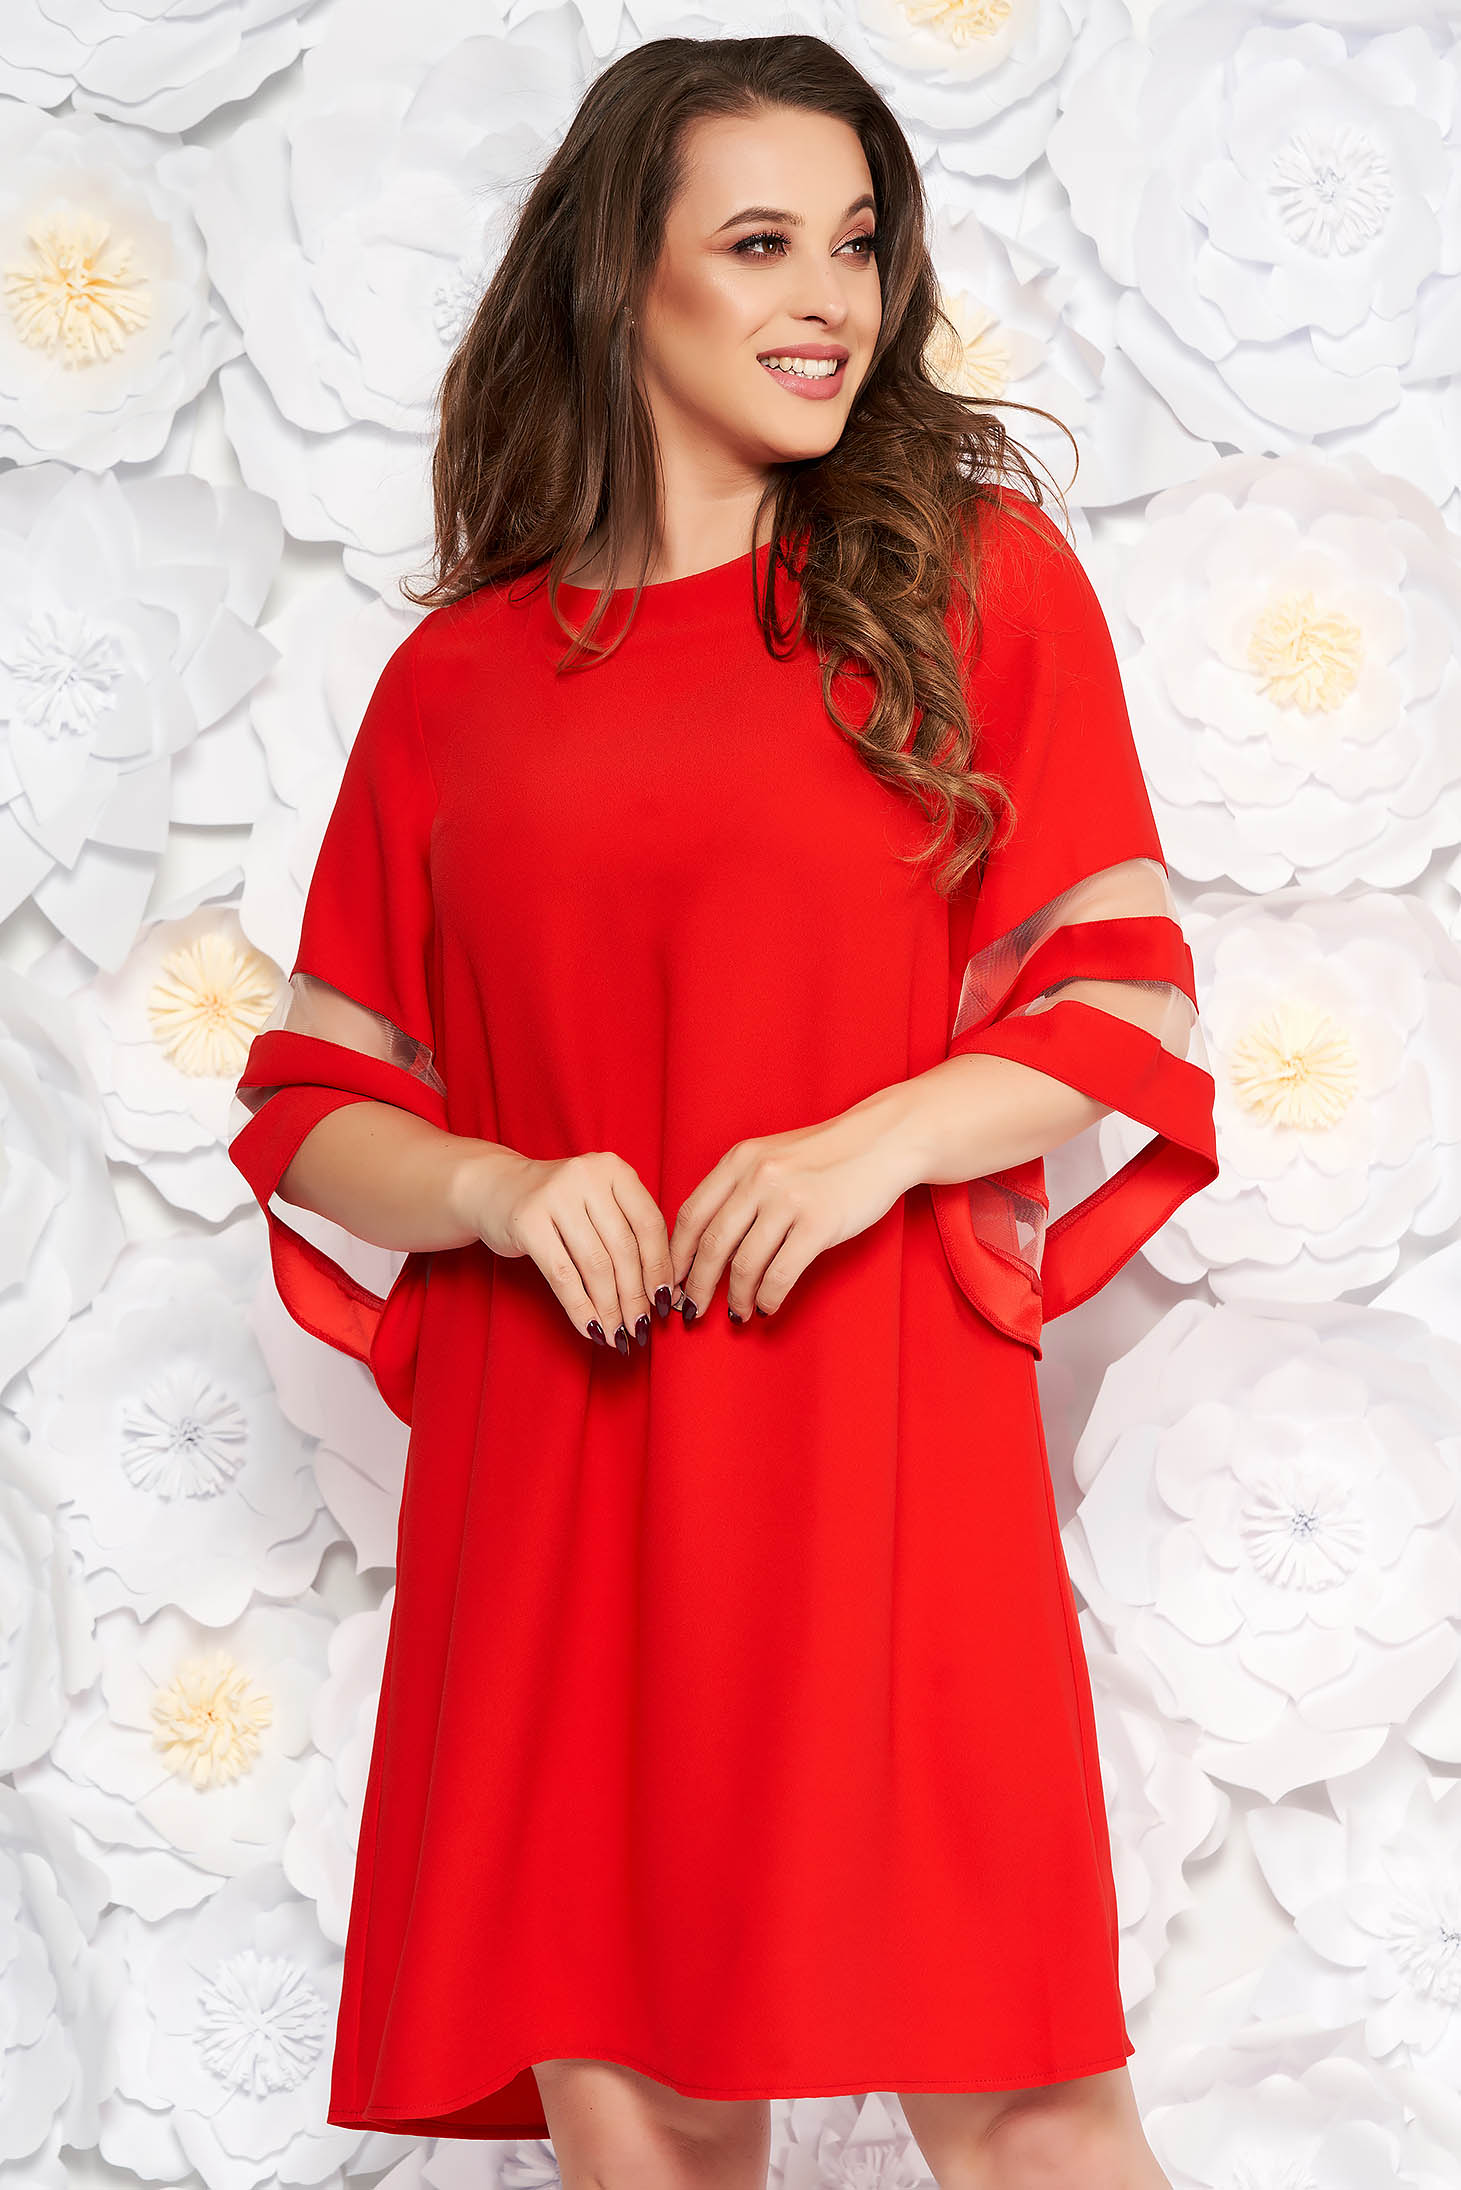 Red dress elegant flared from non elastic fabric large sleeves